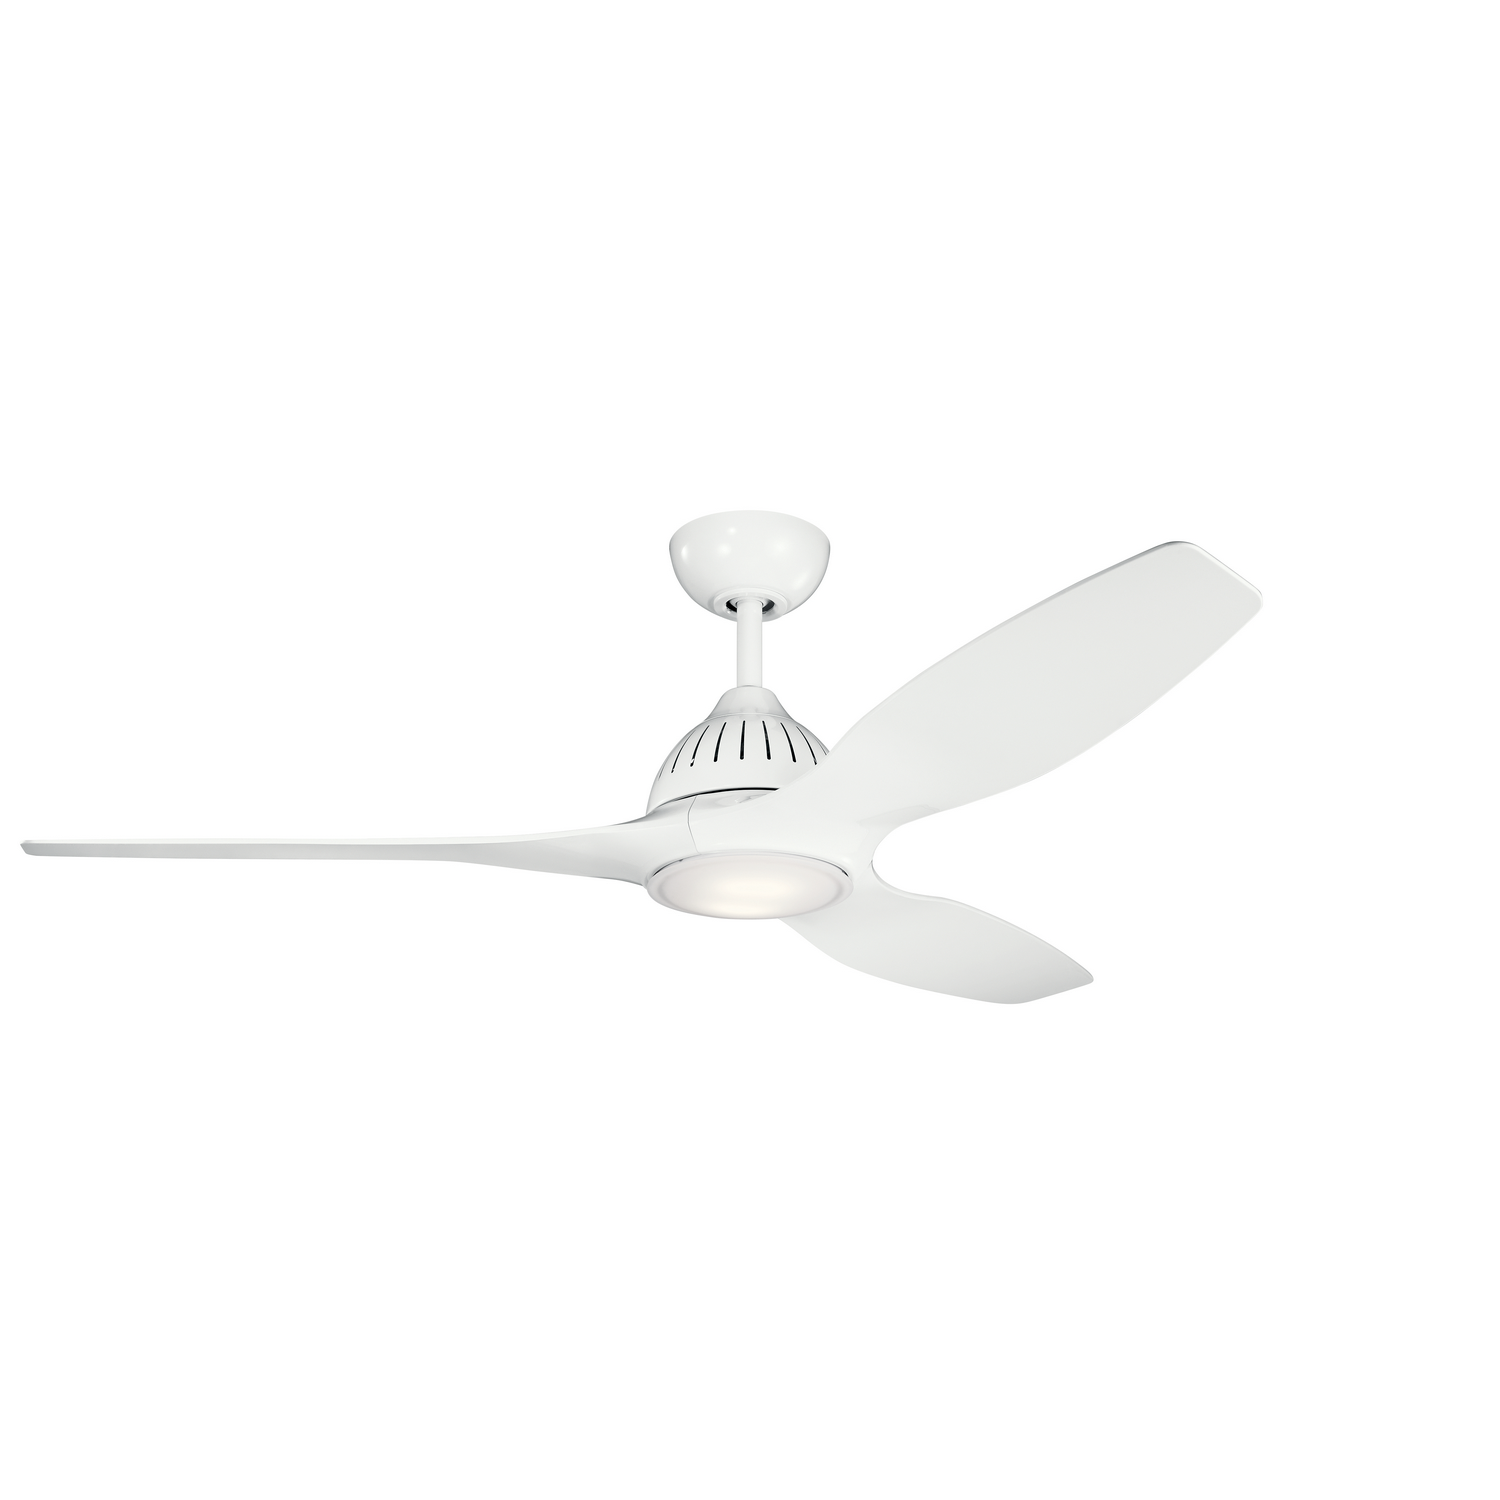 60 inchCeiling Fan from the Jace collection by Kichler 310360WH